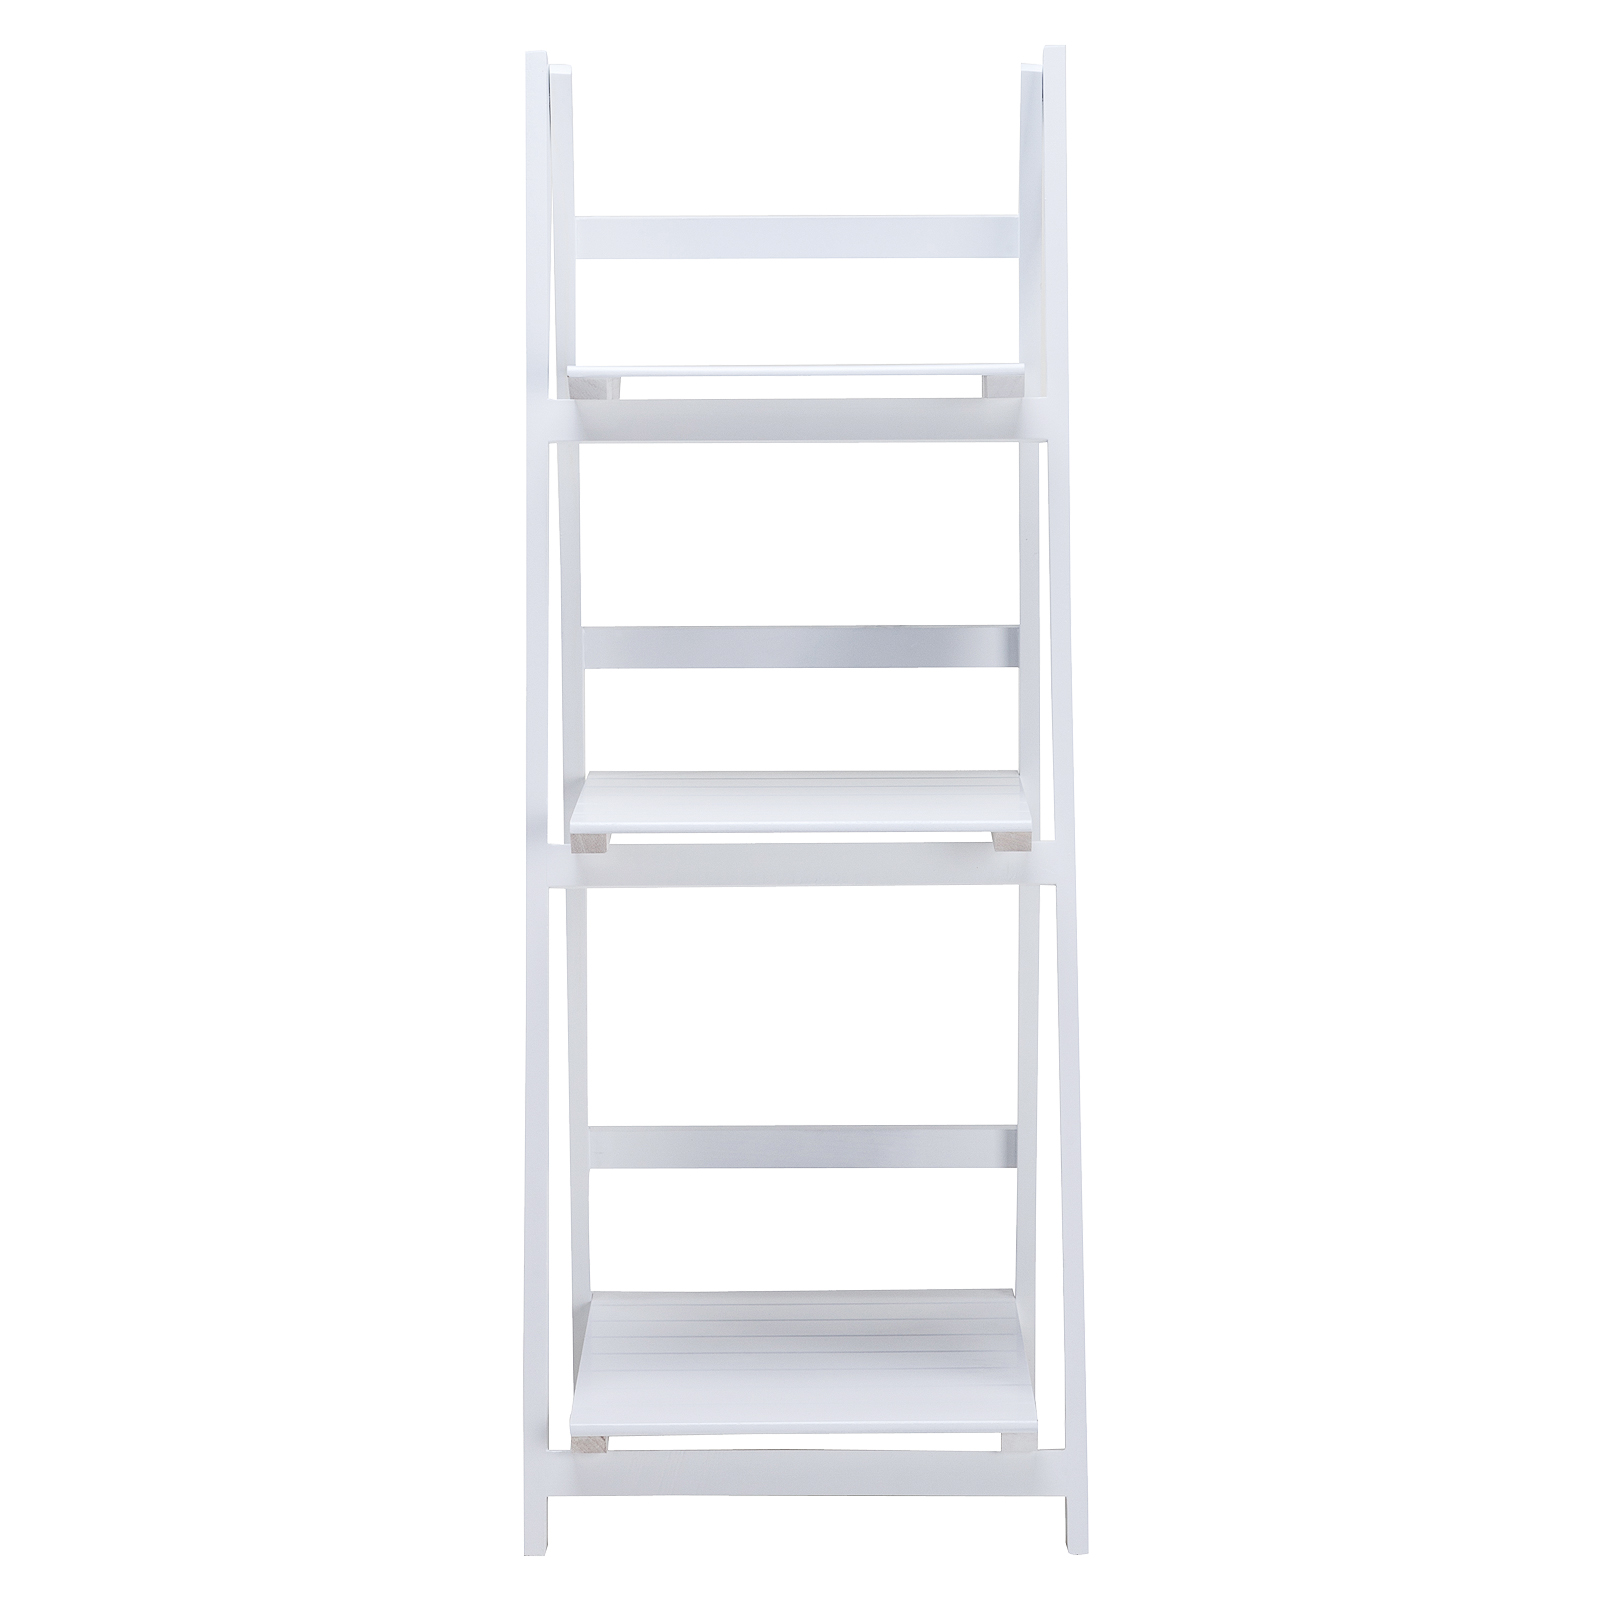 3 tier white leaning ladder wall bookcase shelf storage. Black Bedroom Furniture Sets. Home Design Ideas